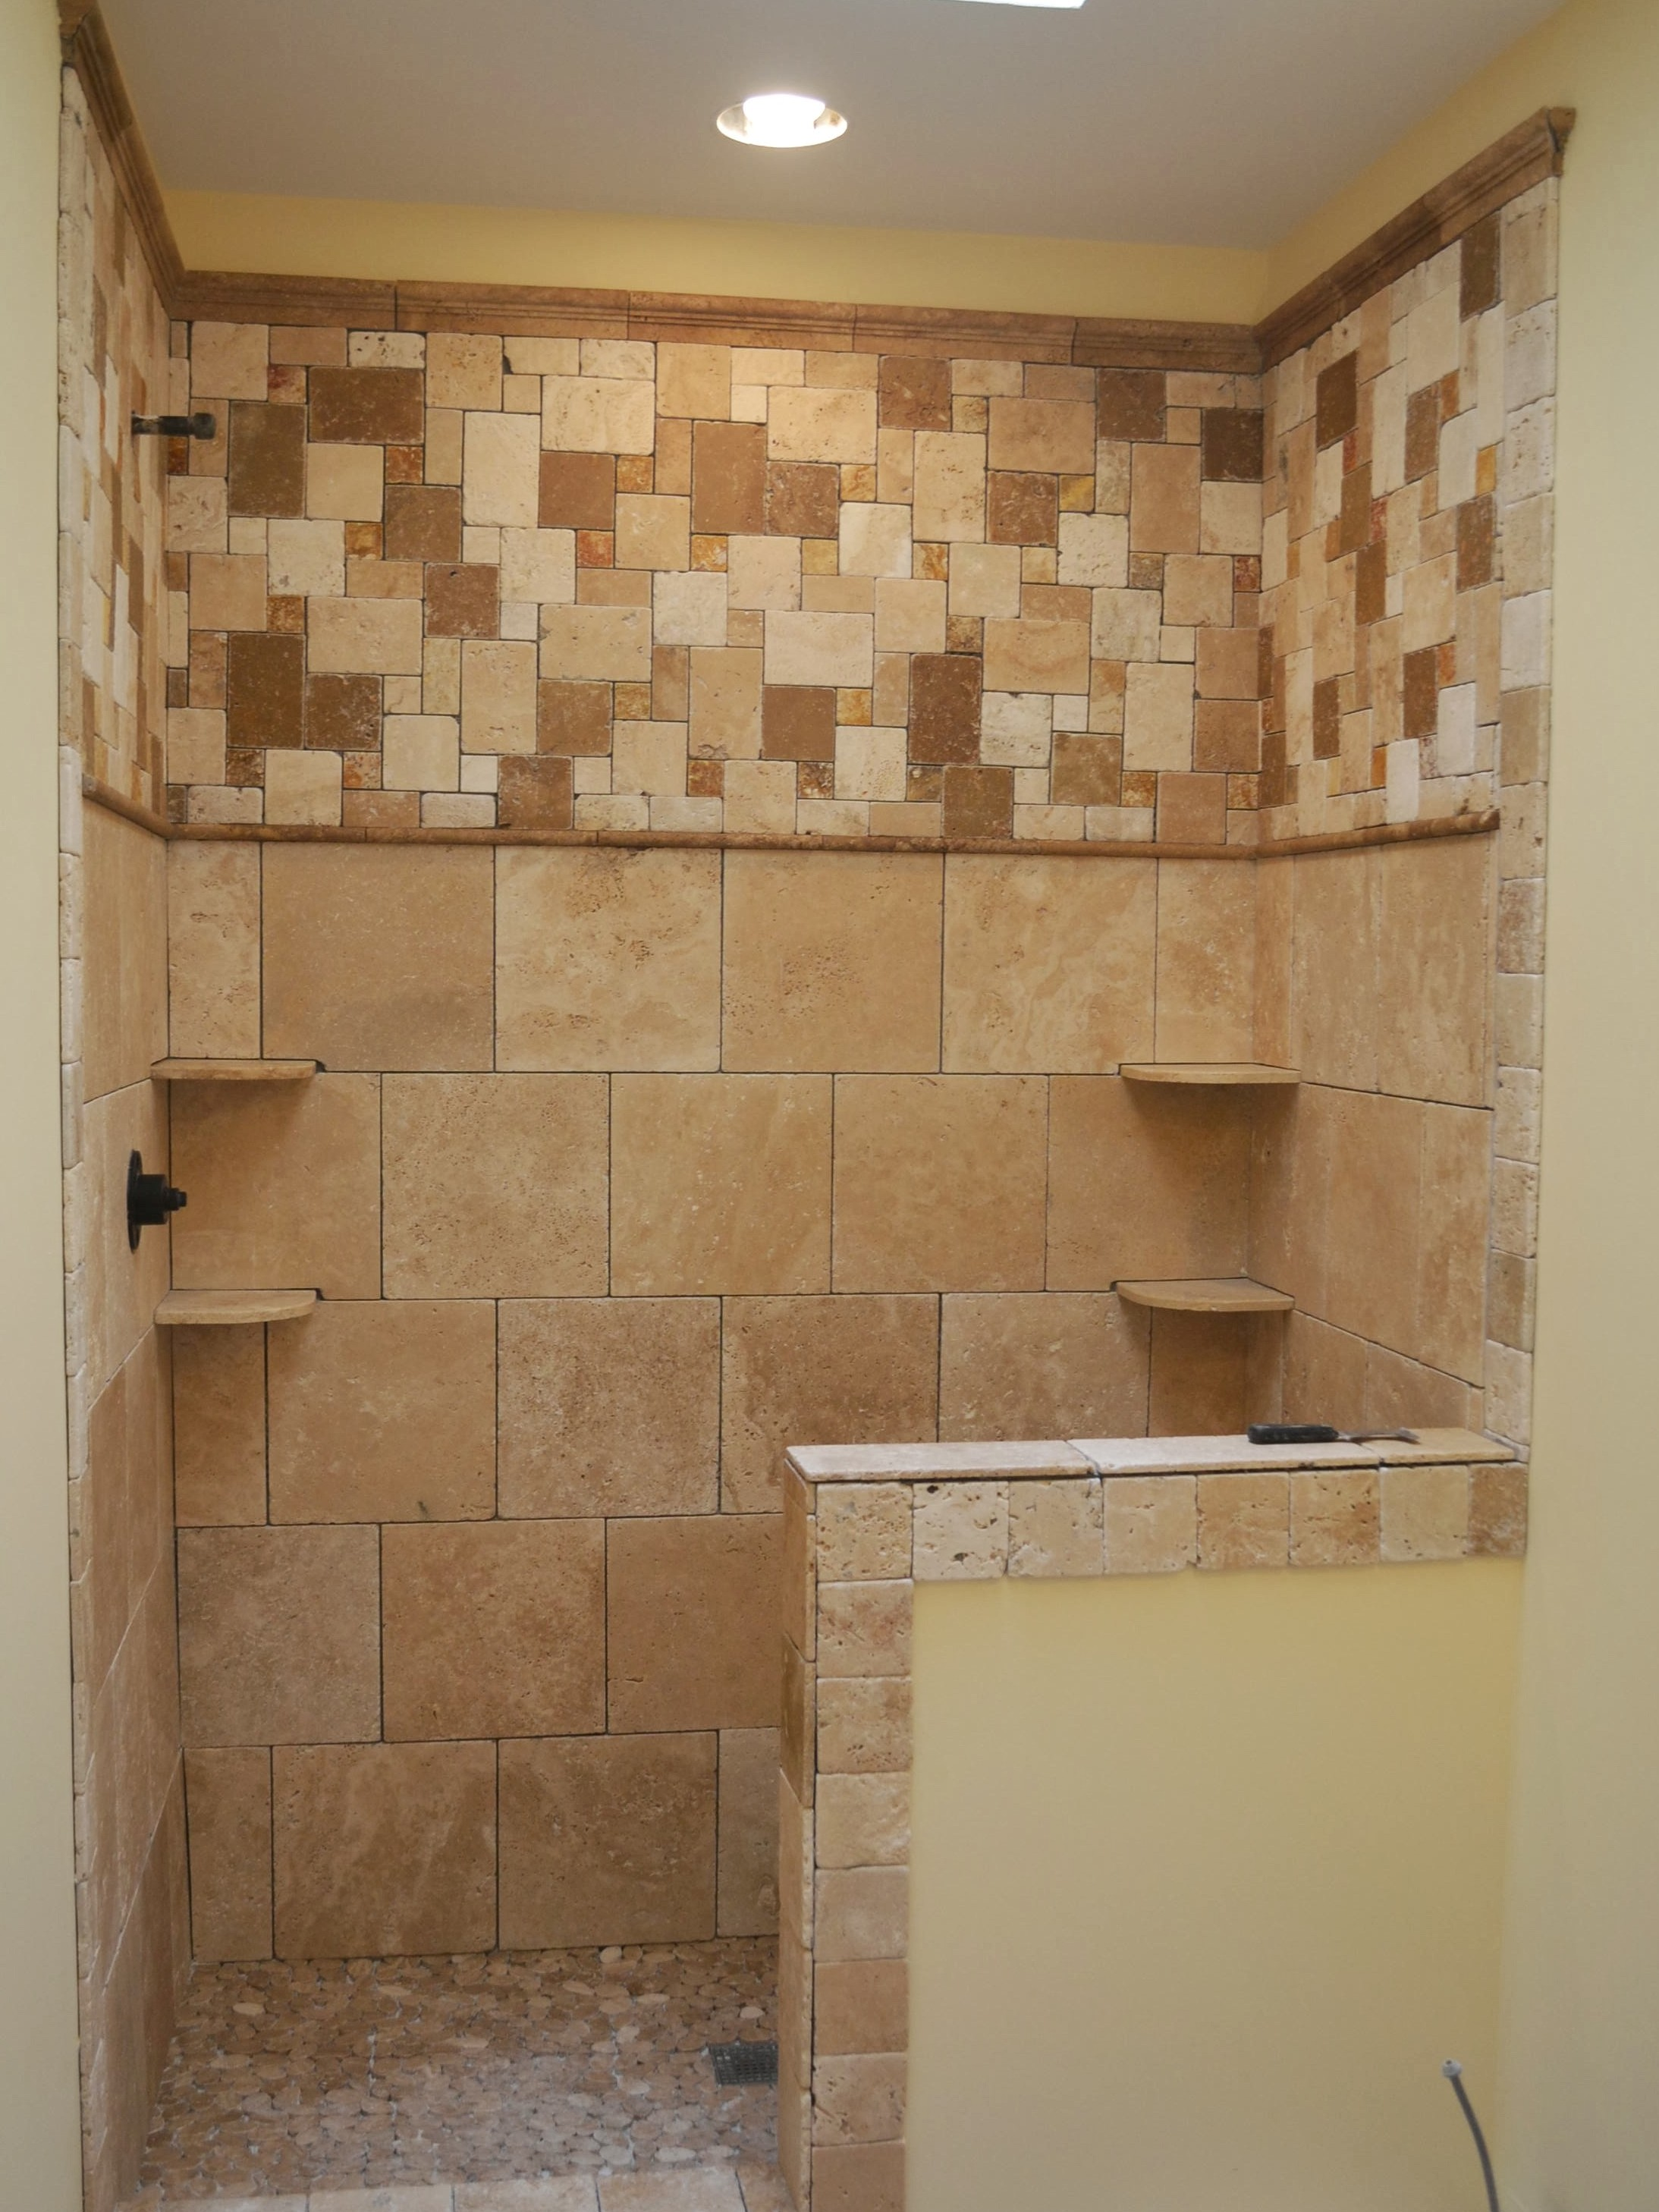 How To Tile A Shower Wall | Pro Construction Guide